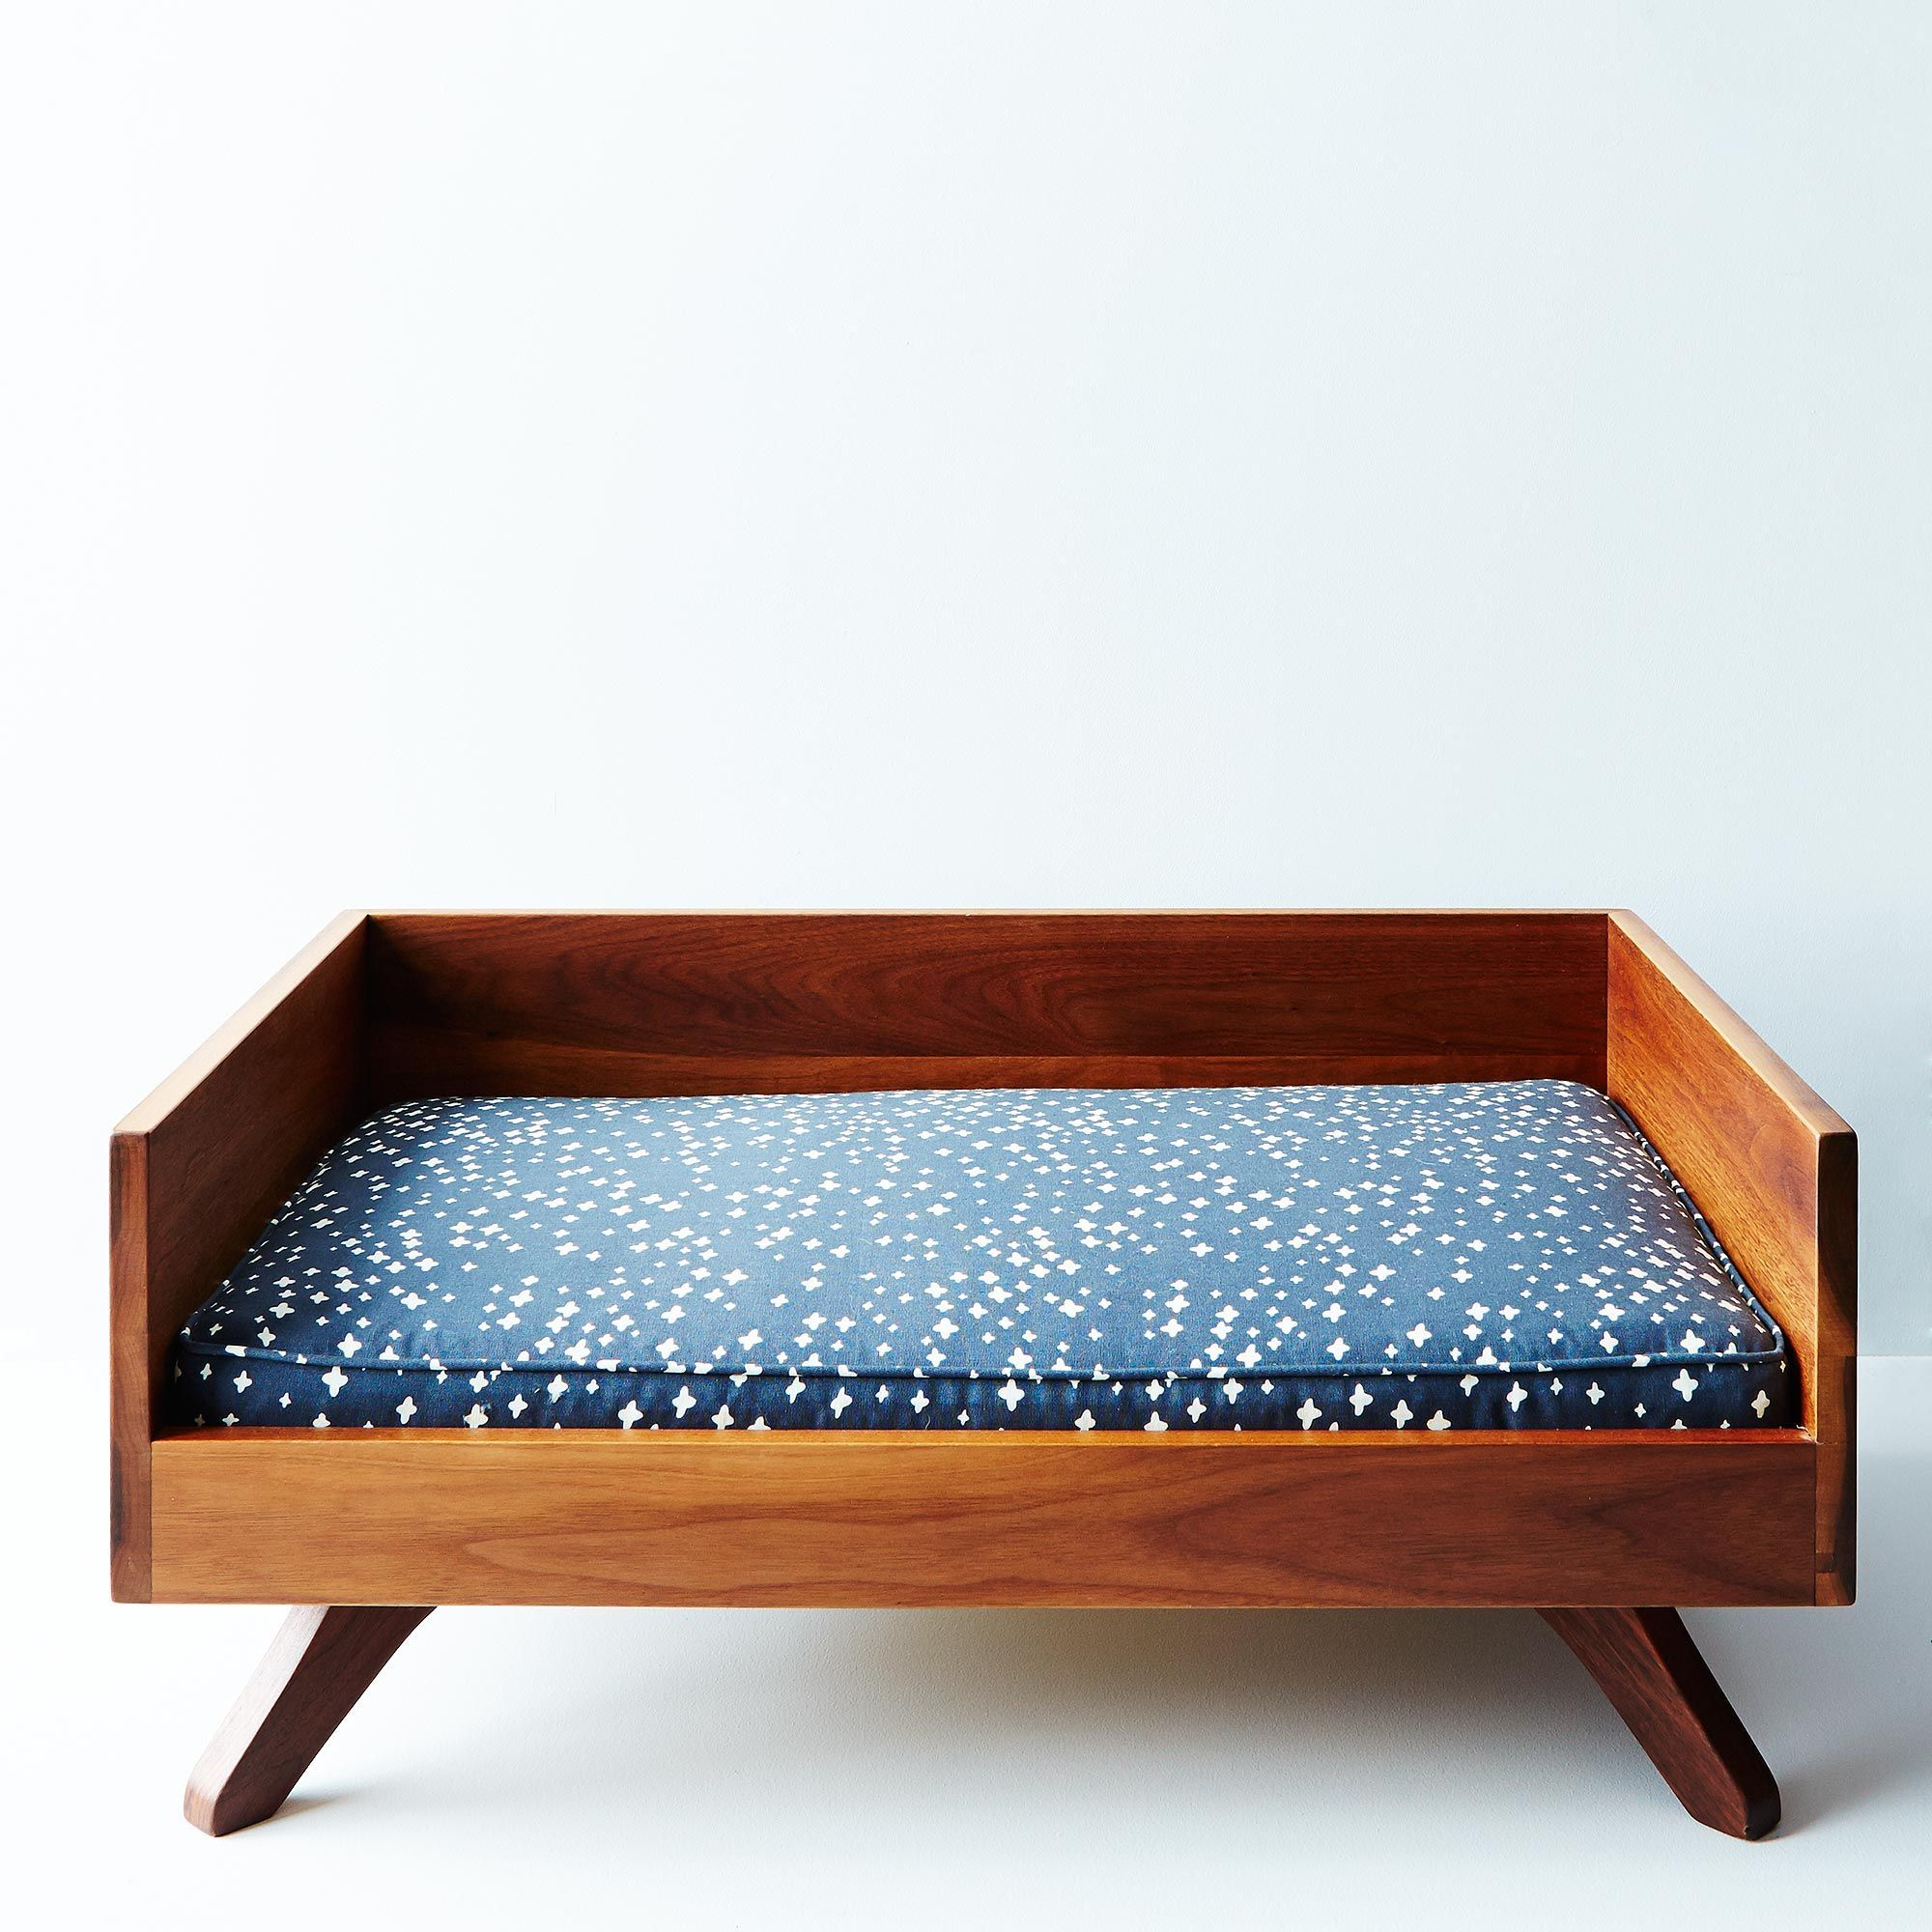 5e9cd006 b11d 4408 ae88 1272cc8949de  2014 1027 eat sleep fetch mid century modern dog bed 003